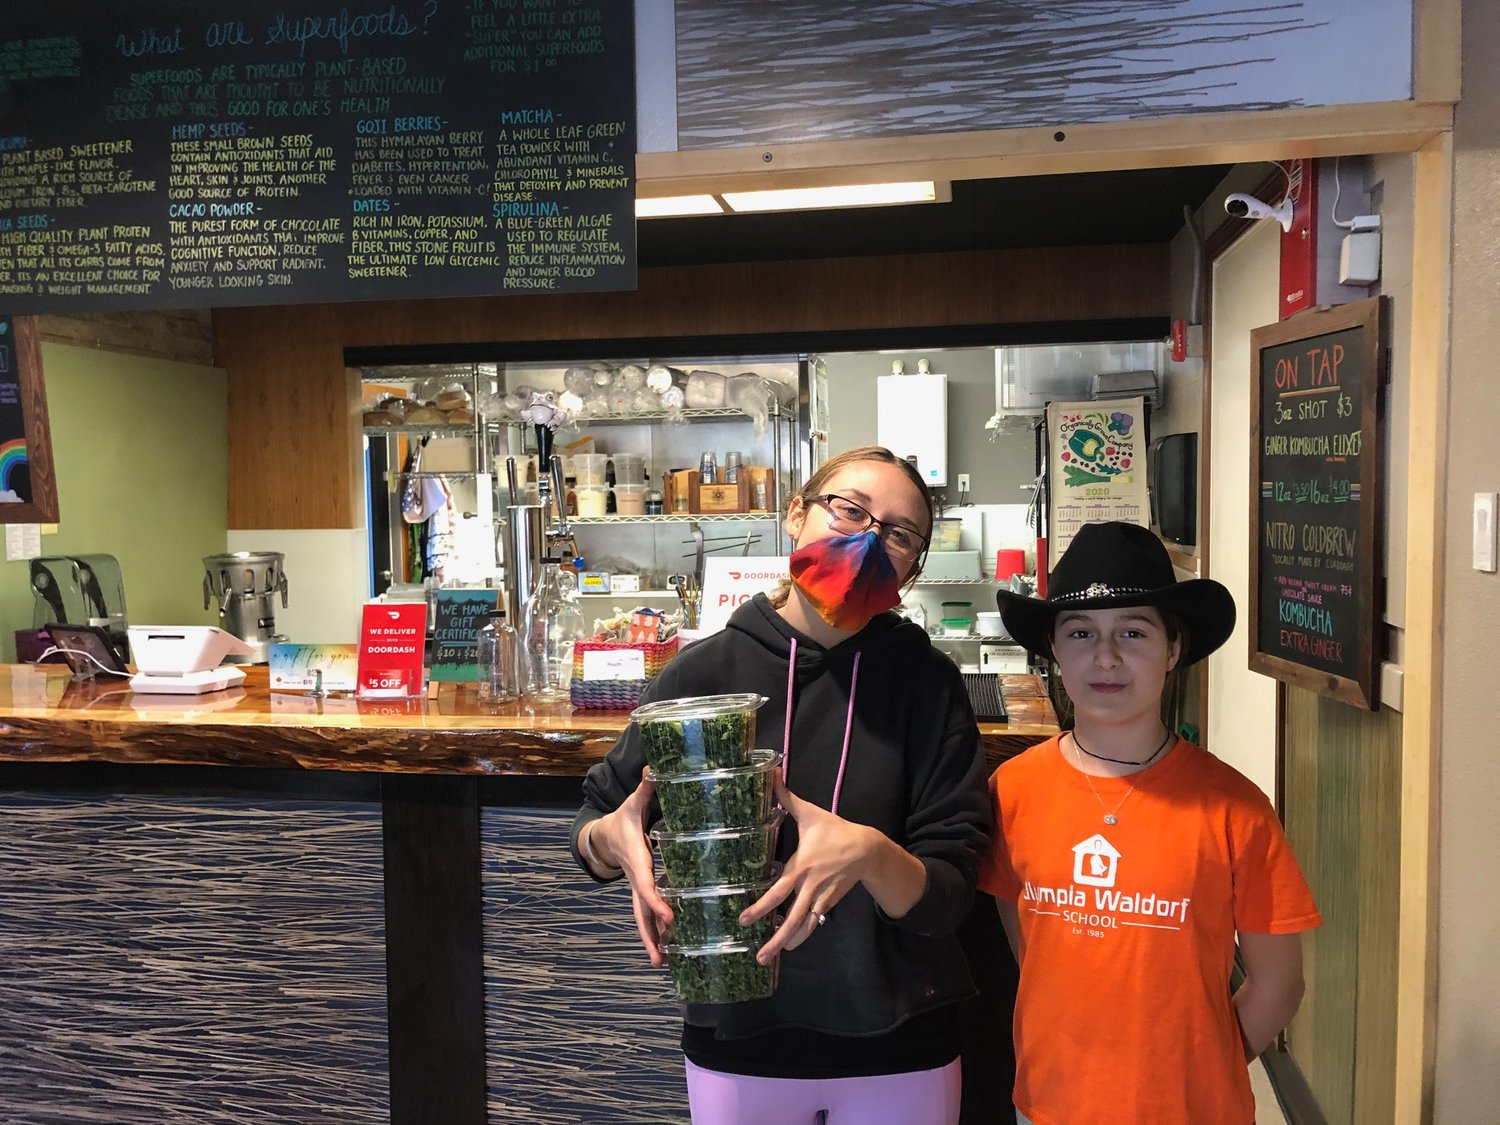 Co-owner Sydney Harmell poses with salads and daughter, Blueberry, in front of the live-edge wood counter at Rainbow Cloud Cafe.